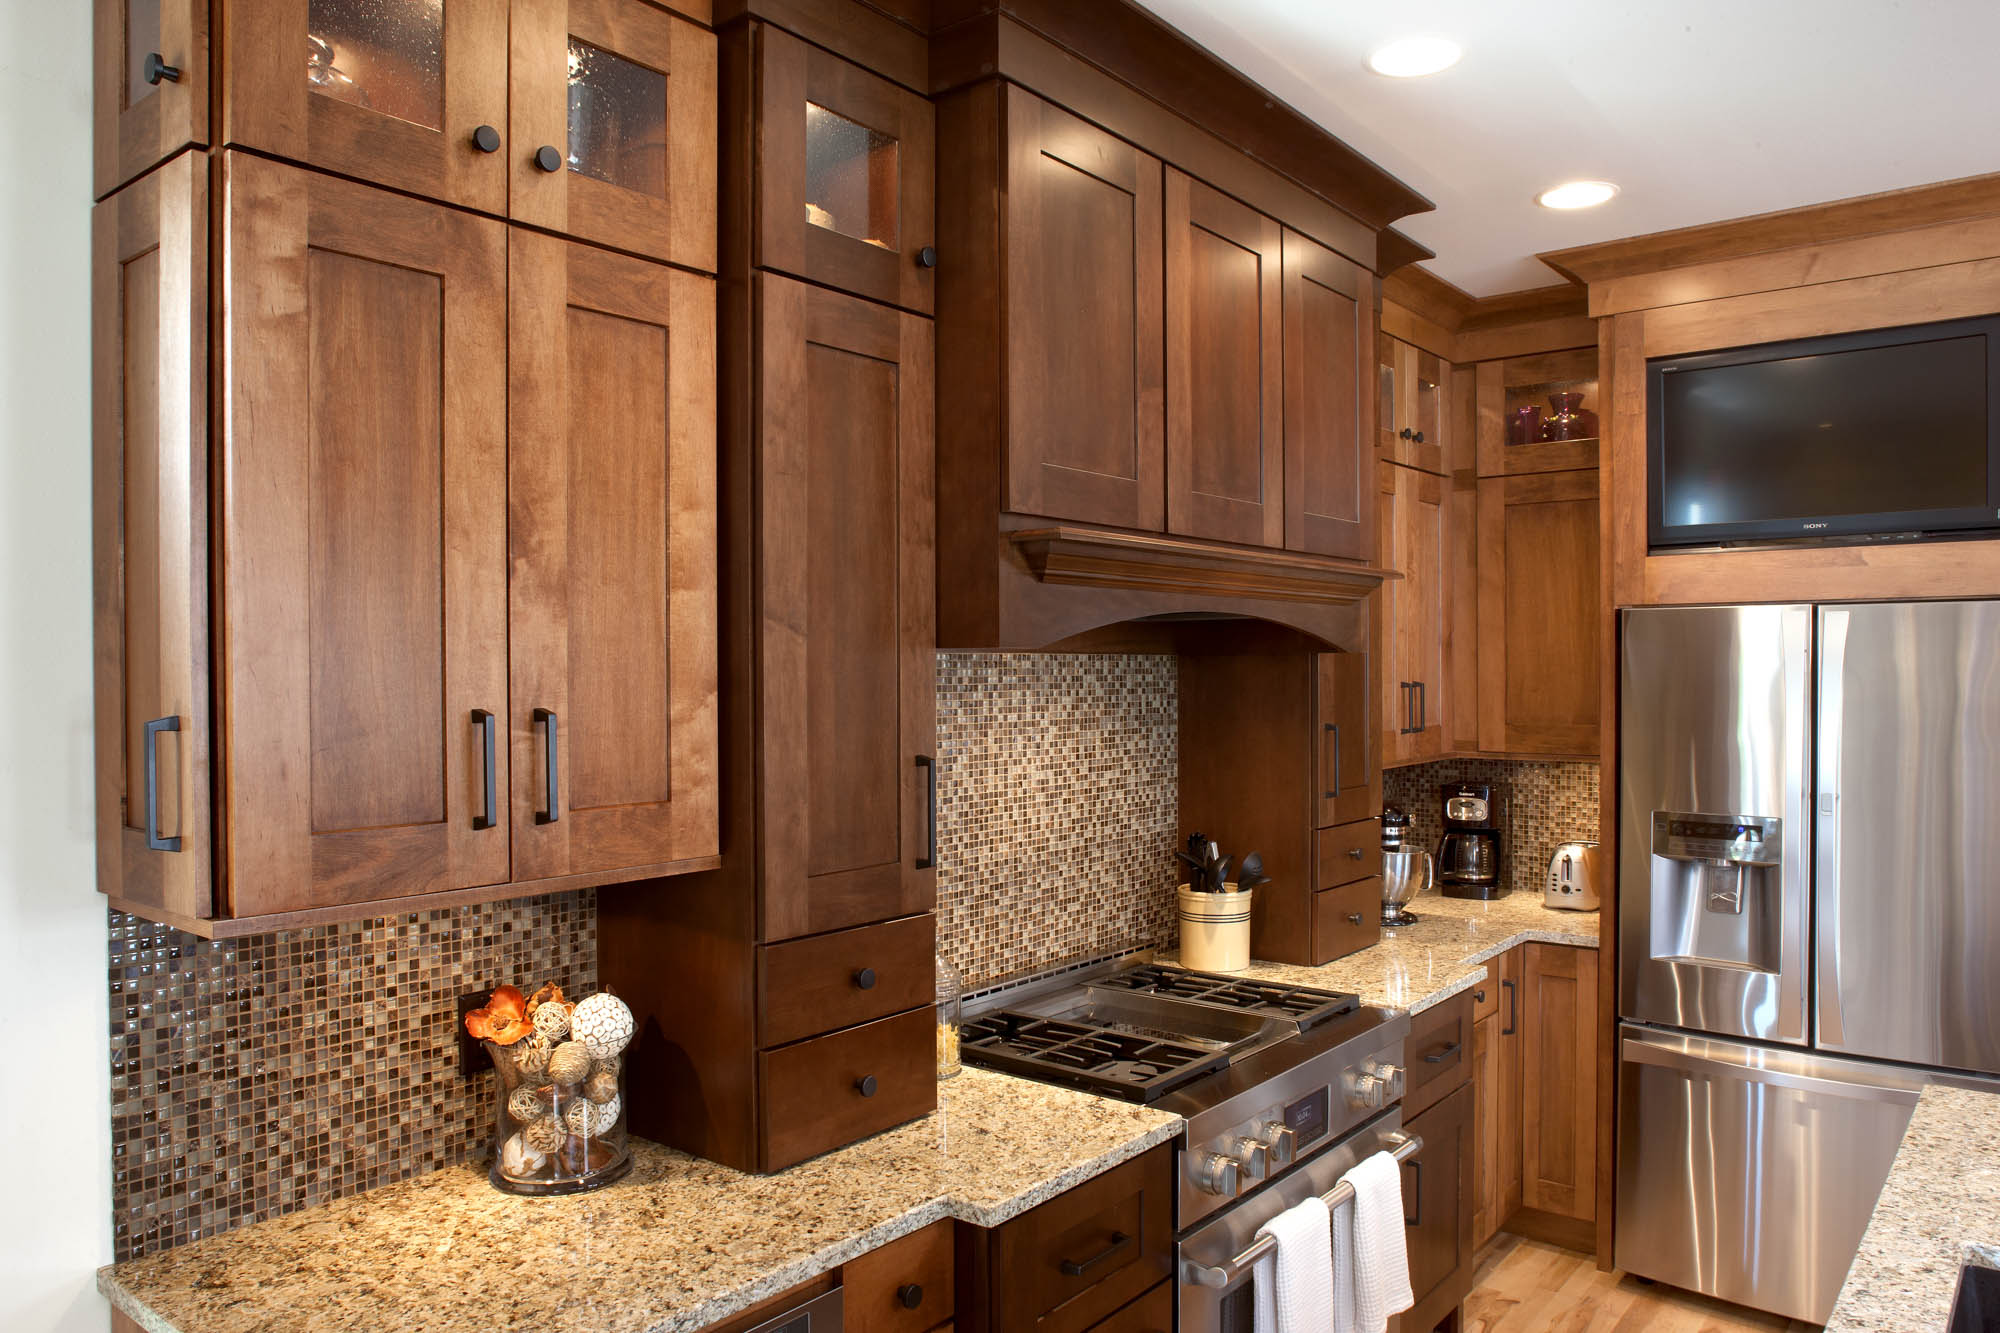 Showplace Kitchen Cabinets See This Professional Baker 39s Kitchen Showplace Cabinetry